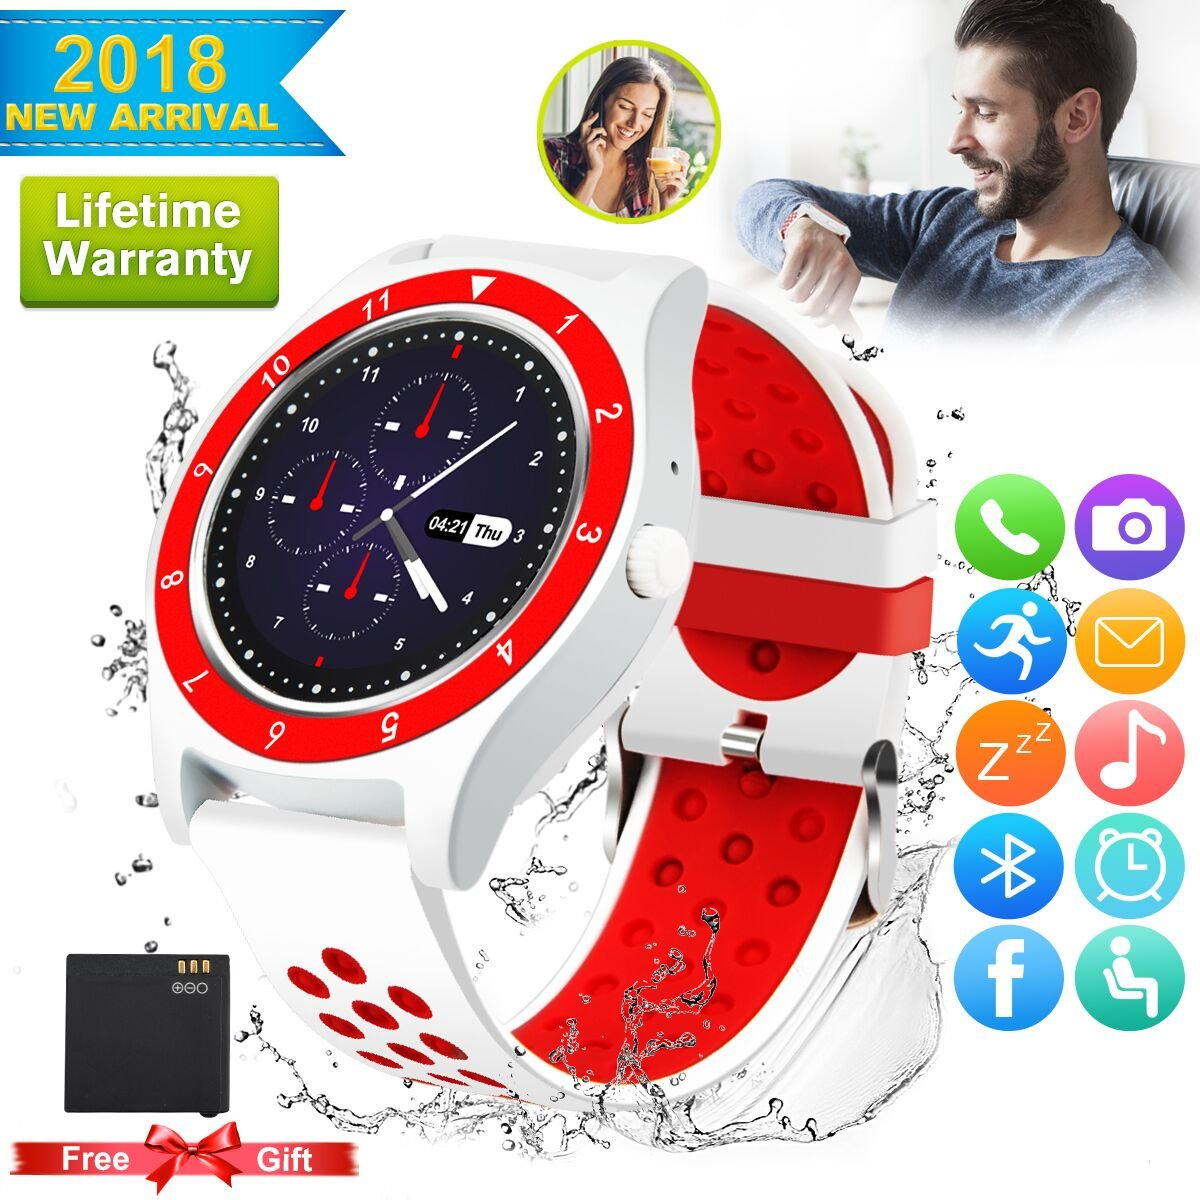 Bluetooth Smart Watch For Android Phones,2018 Smartwatch Android Phone Watch, Waterproof Smart Watches Touchscreen With Camera Compatible Android Samsung IOS Iphone X 8 7 6 6S 5 Plus For Mens Women